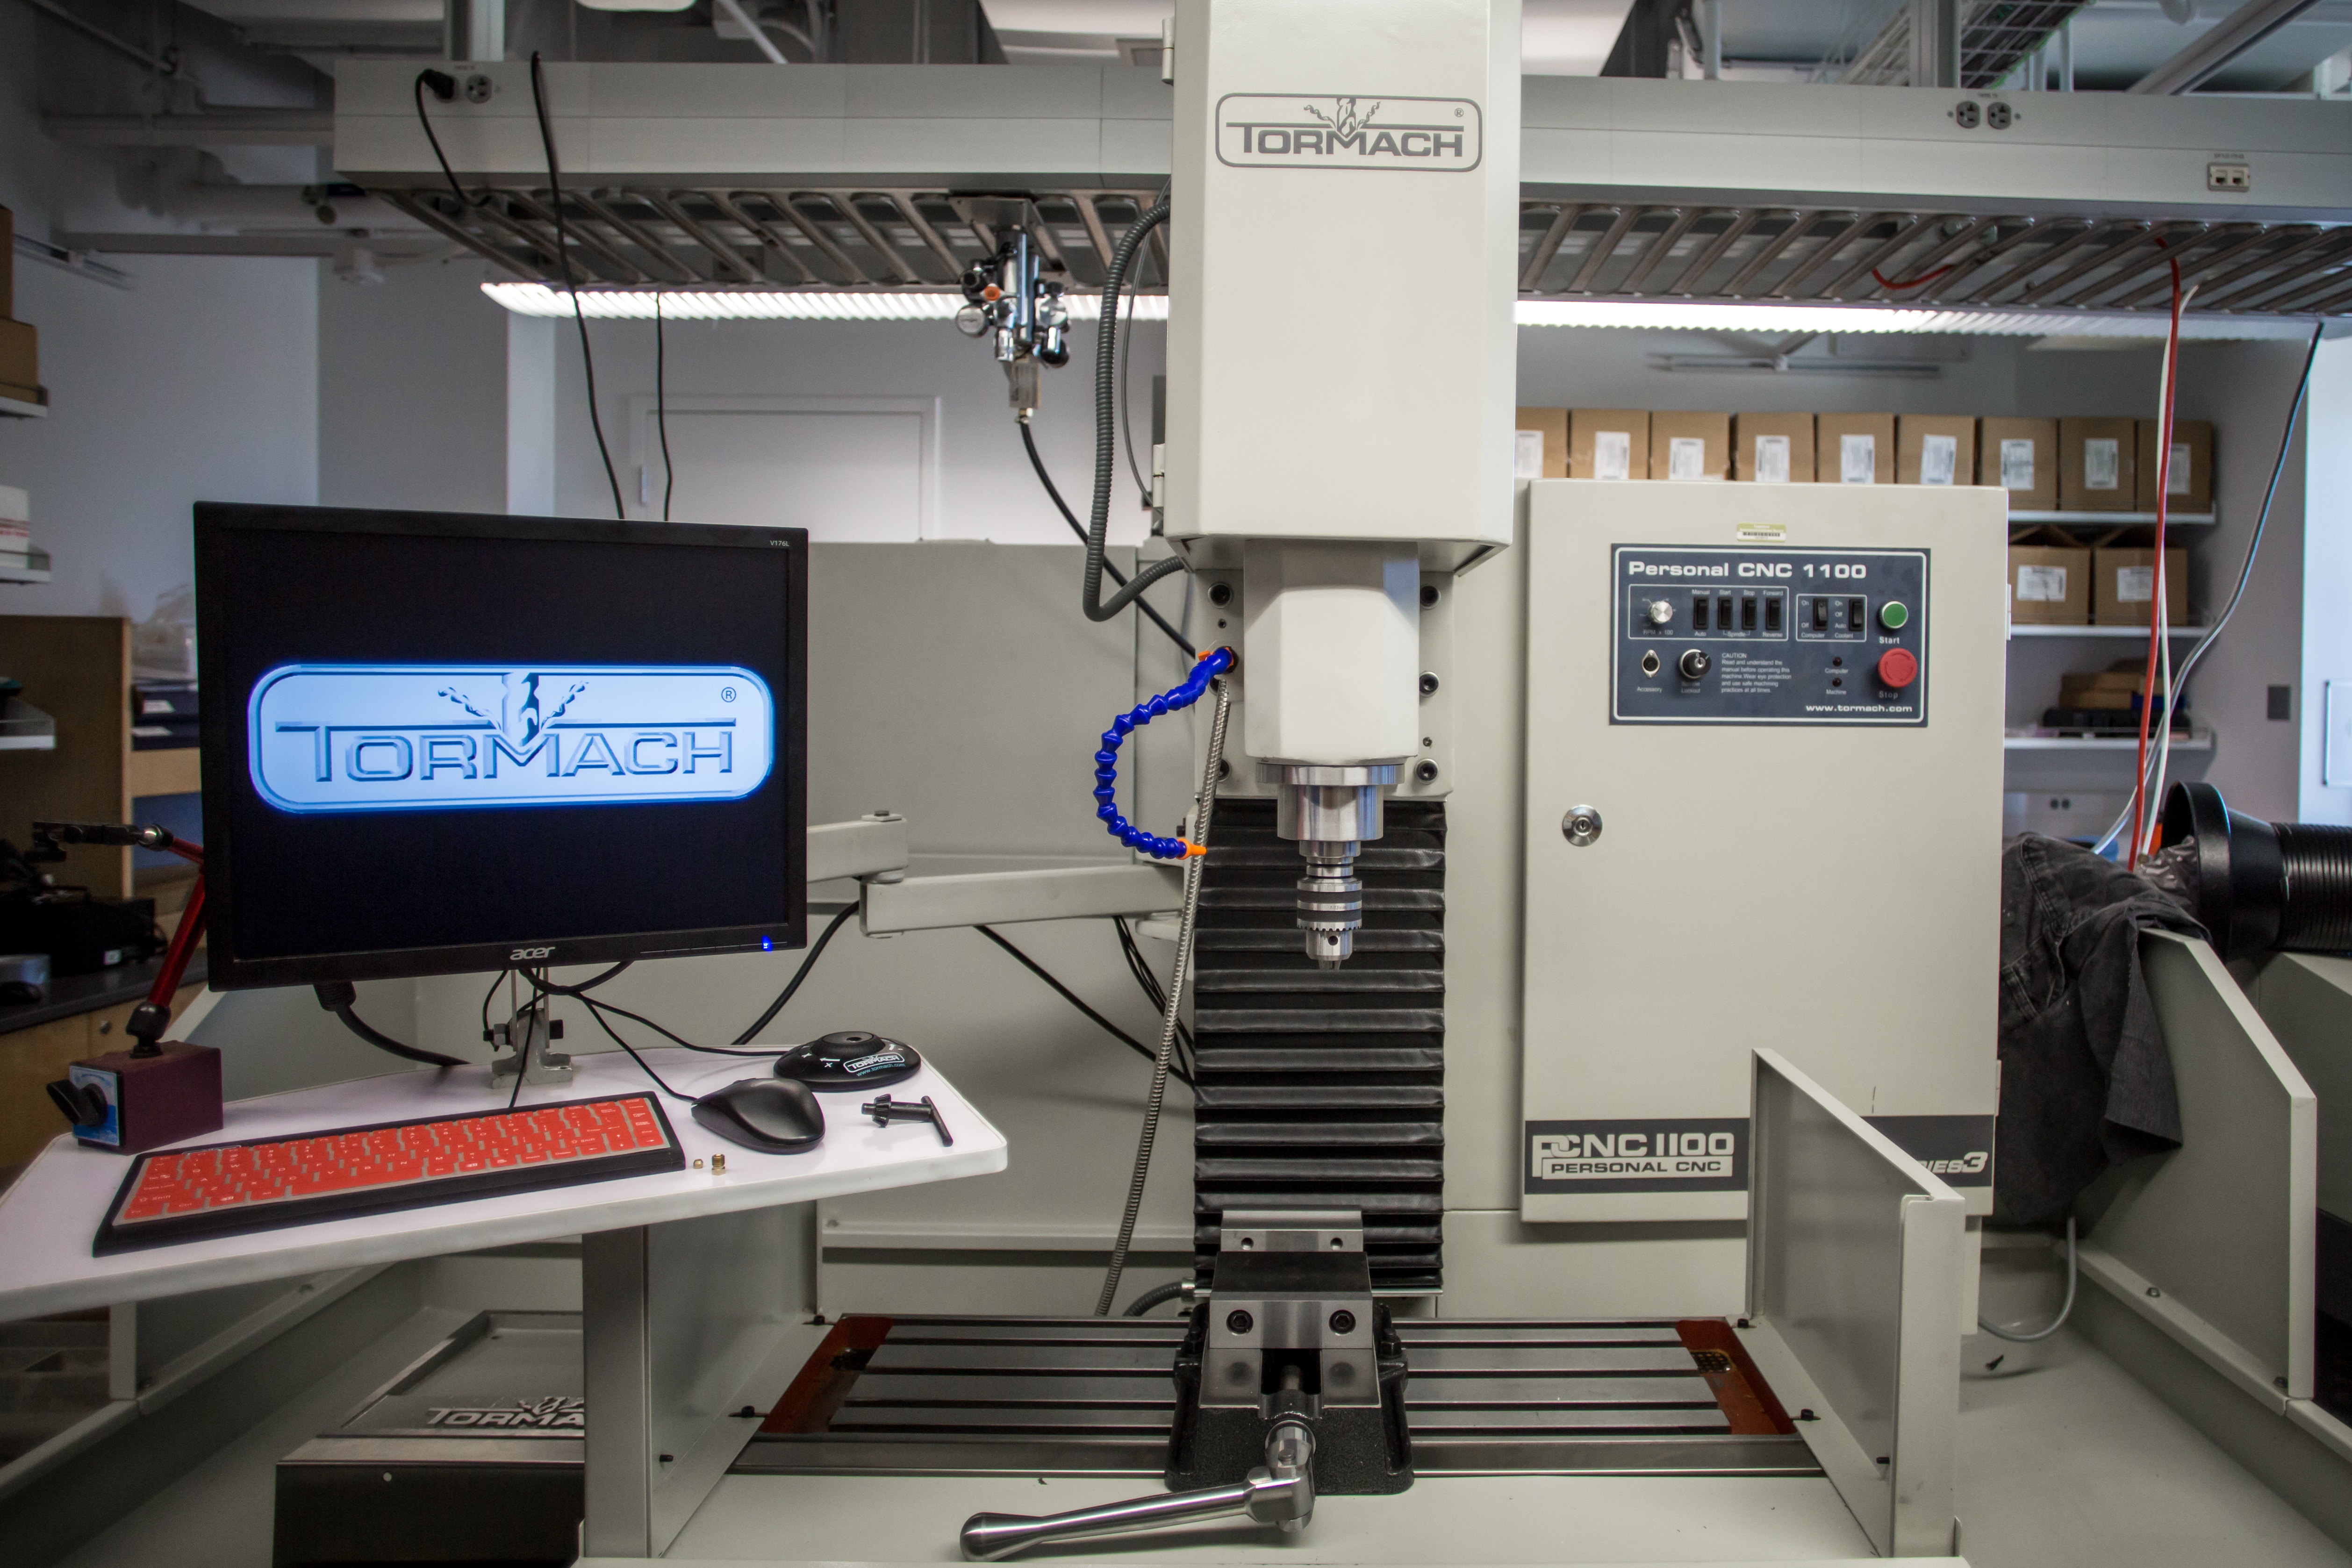 Tormach CNC Mill in the machine shop